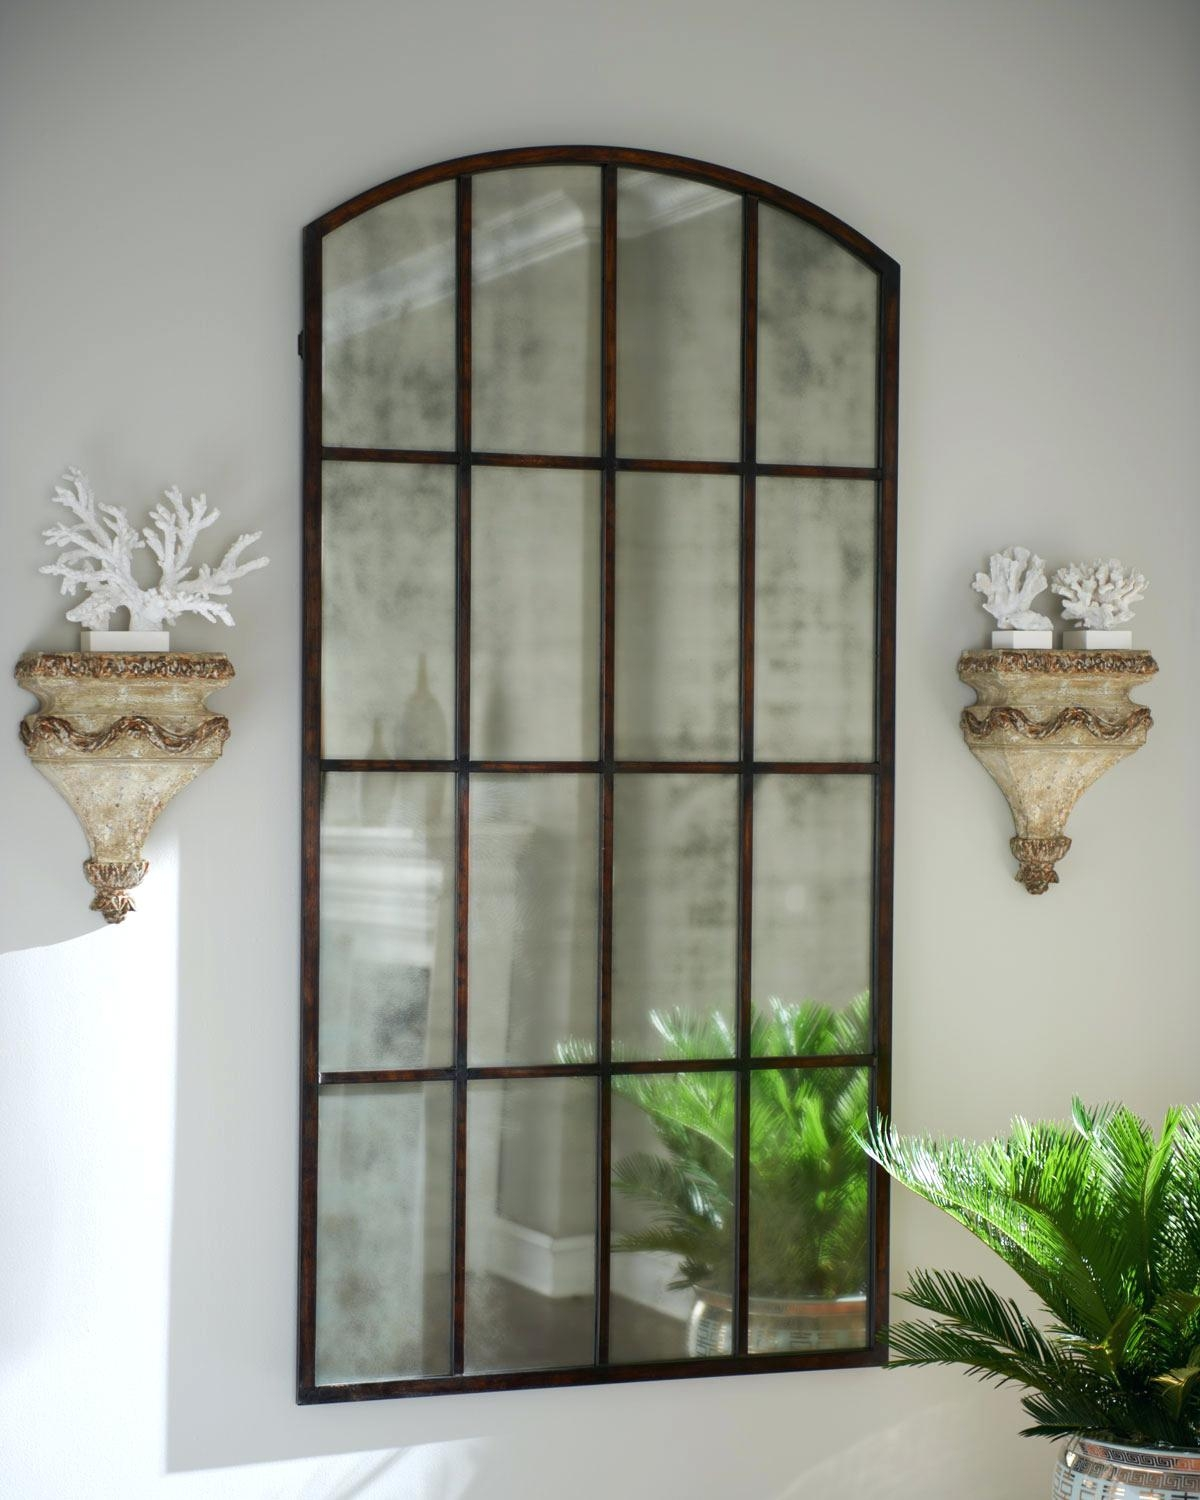 15 Best Collection of Large Arched Mirror